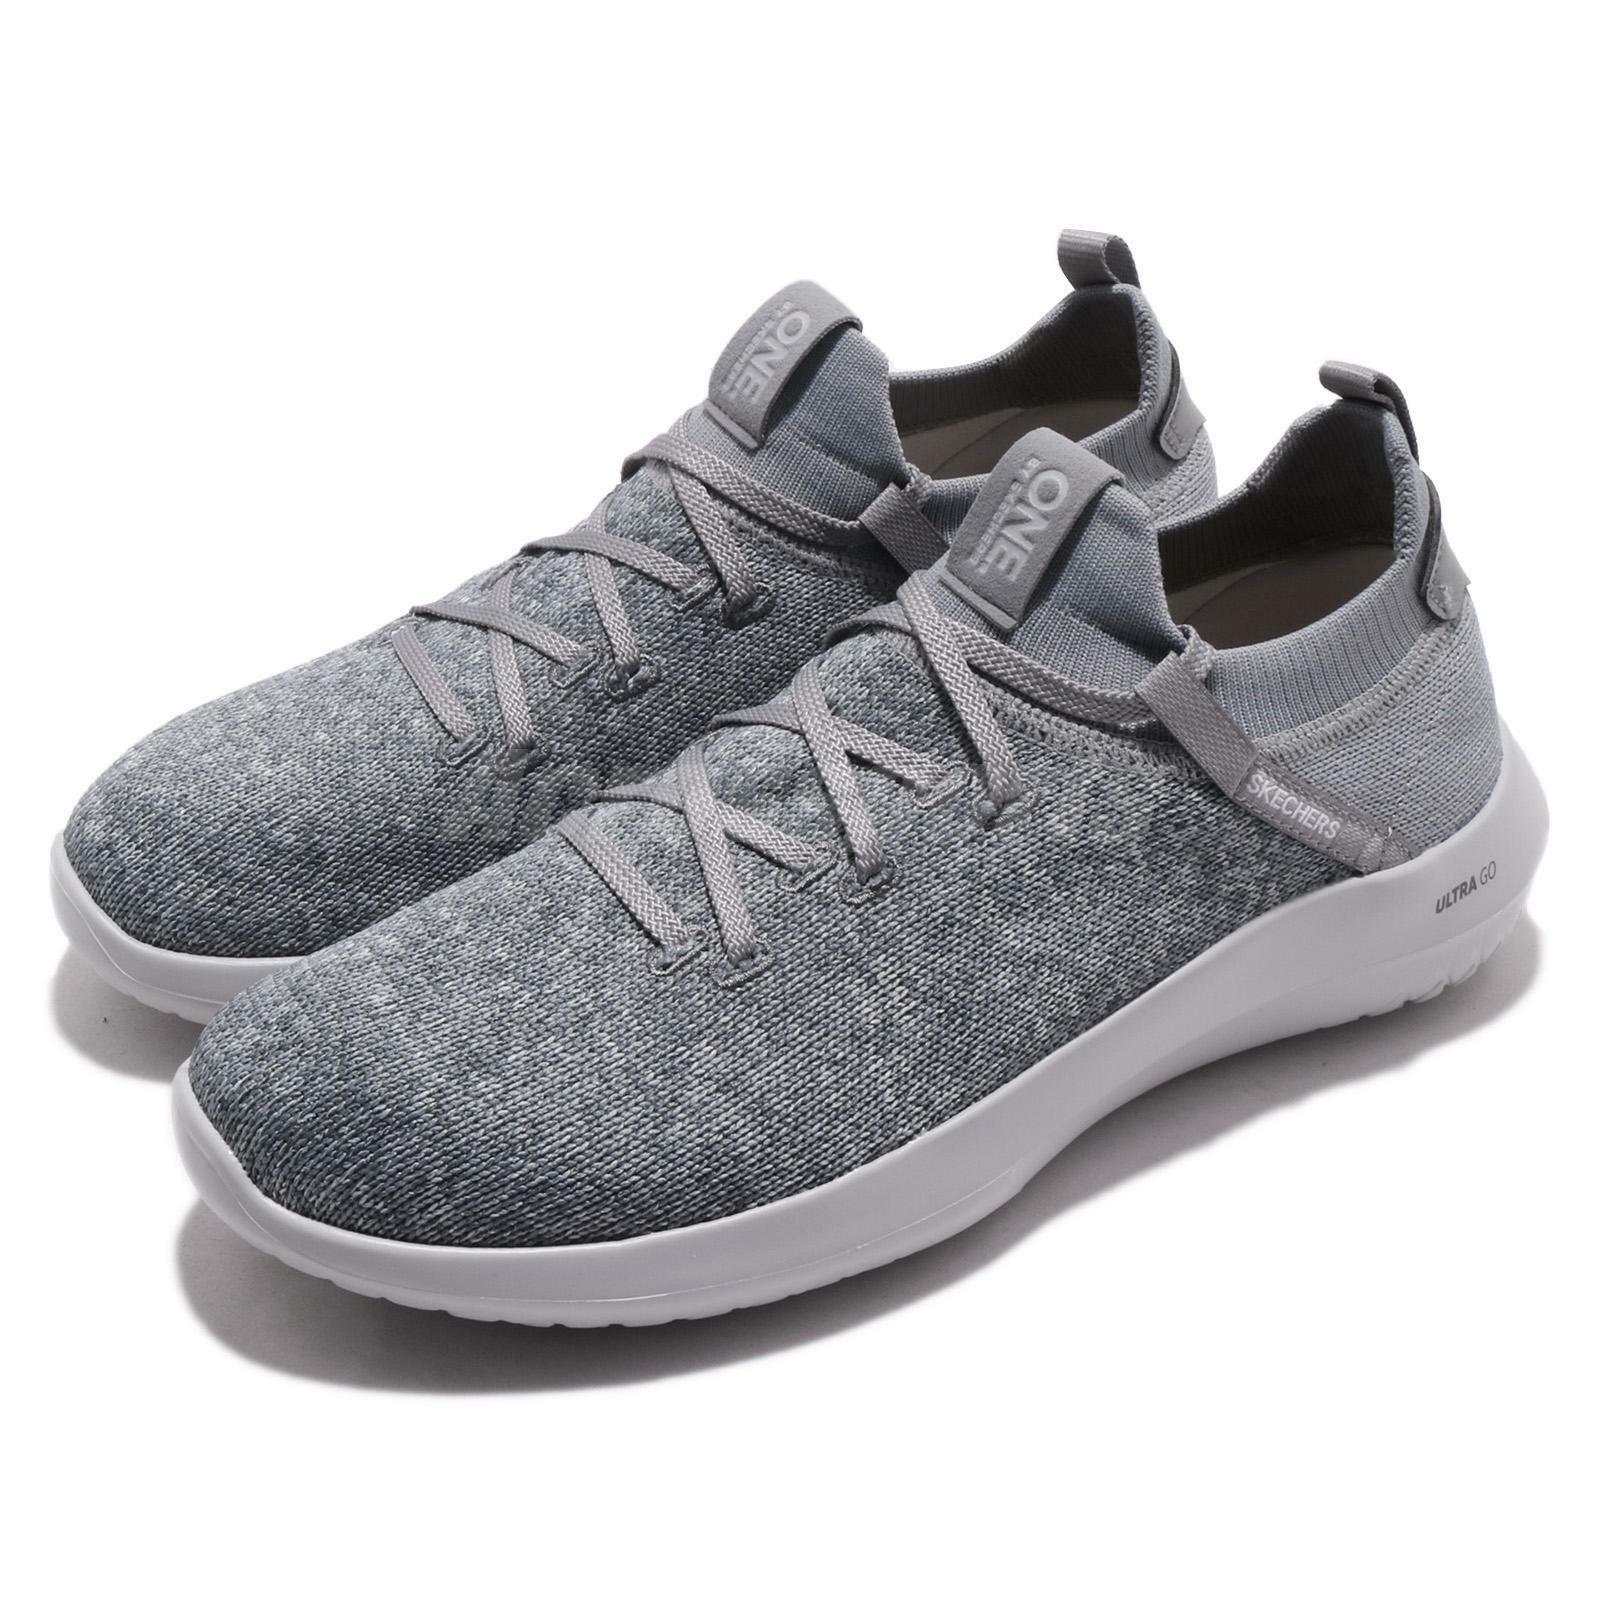 Skechers Downtown Ultra-Core gris Men Running Casual zapatos zapatillas 18548-GRY 18548-GRY 18548-GRY af7141